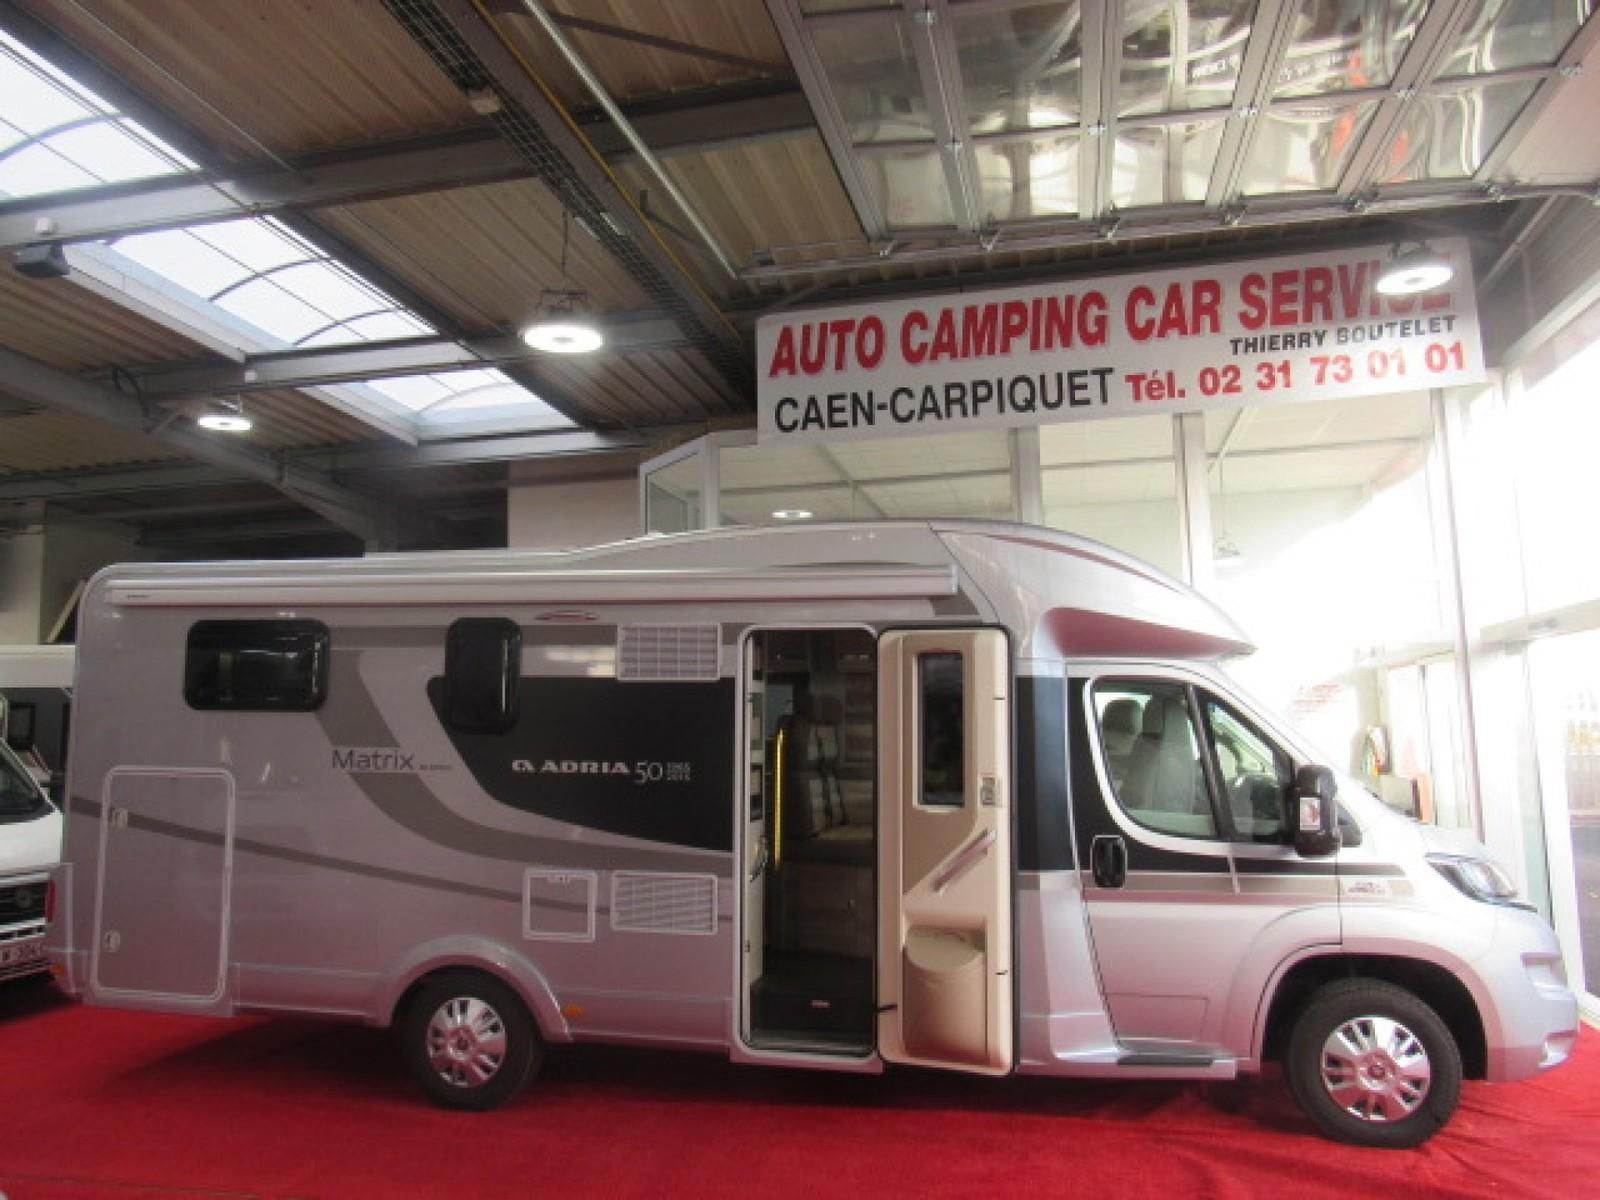 Boutelet caen camping car